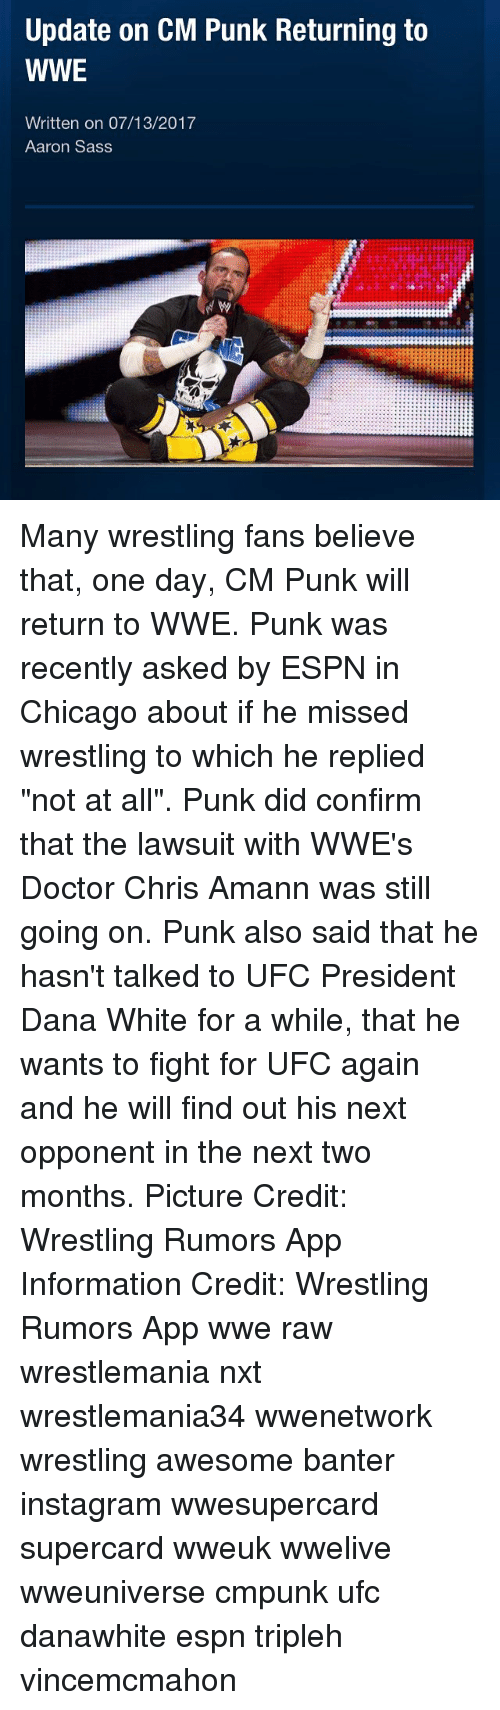 "Confirmated: Update on CM Punk Returning to  WWE  Written on 07/13/2017  Aaron Sass Many wrestling fans believe that, one day, CM Punk will return to WWE. Punk was recently asked by ESPN in Chicago about if he missed wrestling to which he replied ""not at all"". Punk did confirm that the lawsuit with WWE's Doctor Chris Amann was still going on. Punk also said that he hasn't talked to UFC President Dana White for a while, that he wants to fight for UFC again and he will find out his next opponent in the next two months. Picture Credit: Wrestling Rumors App Information Credit: Wrestling Rumors App wwe raw wrestlemania nxt wrestlemania34 wwenetwork wrestling awesome banter instagram wwesupercard supercard wweuk wwelive wweuniverse cmpunk ufc danawhite espn tripleh vincemcmahon"